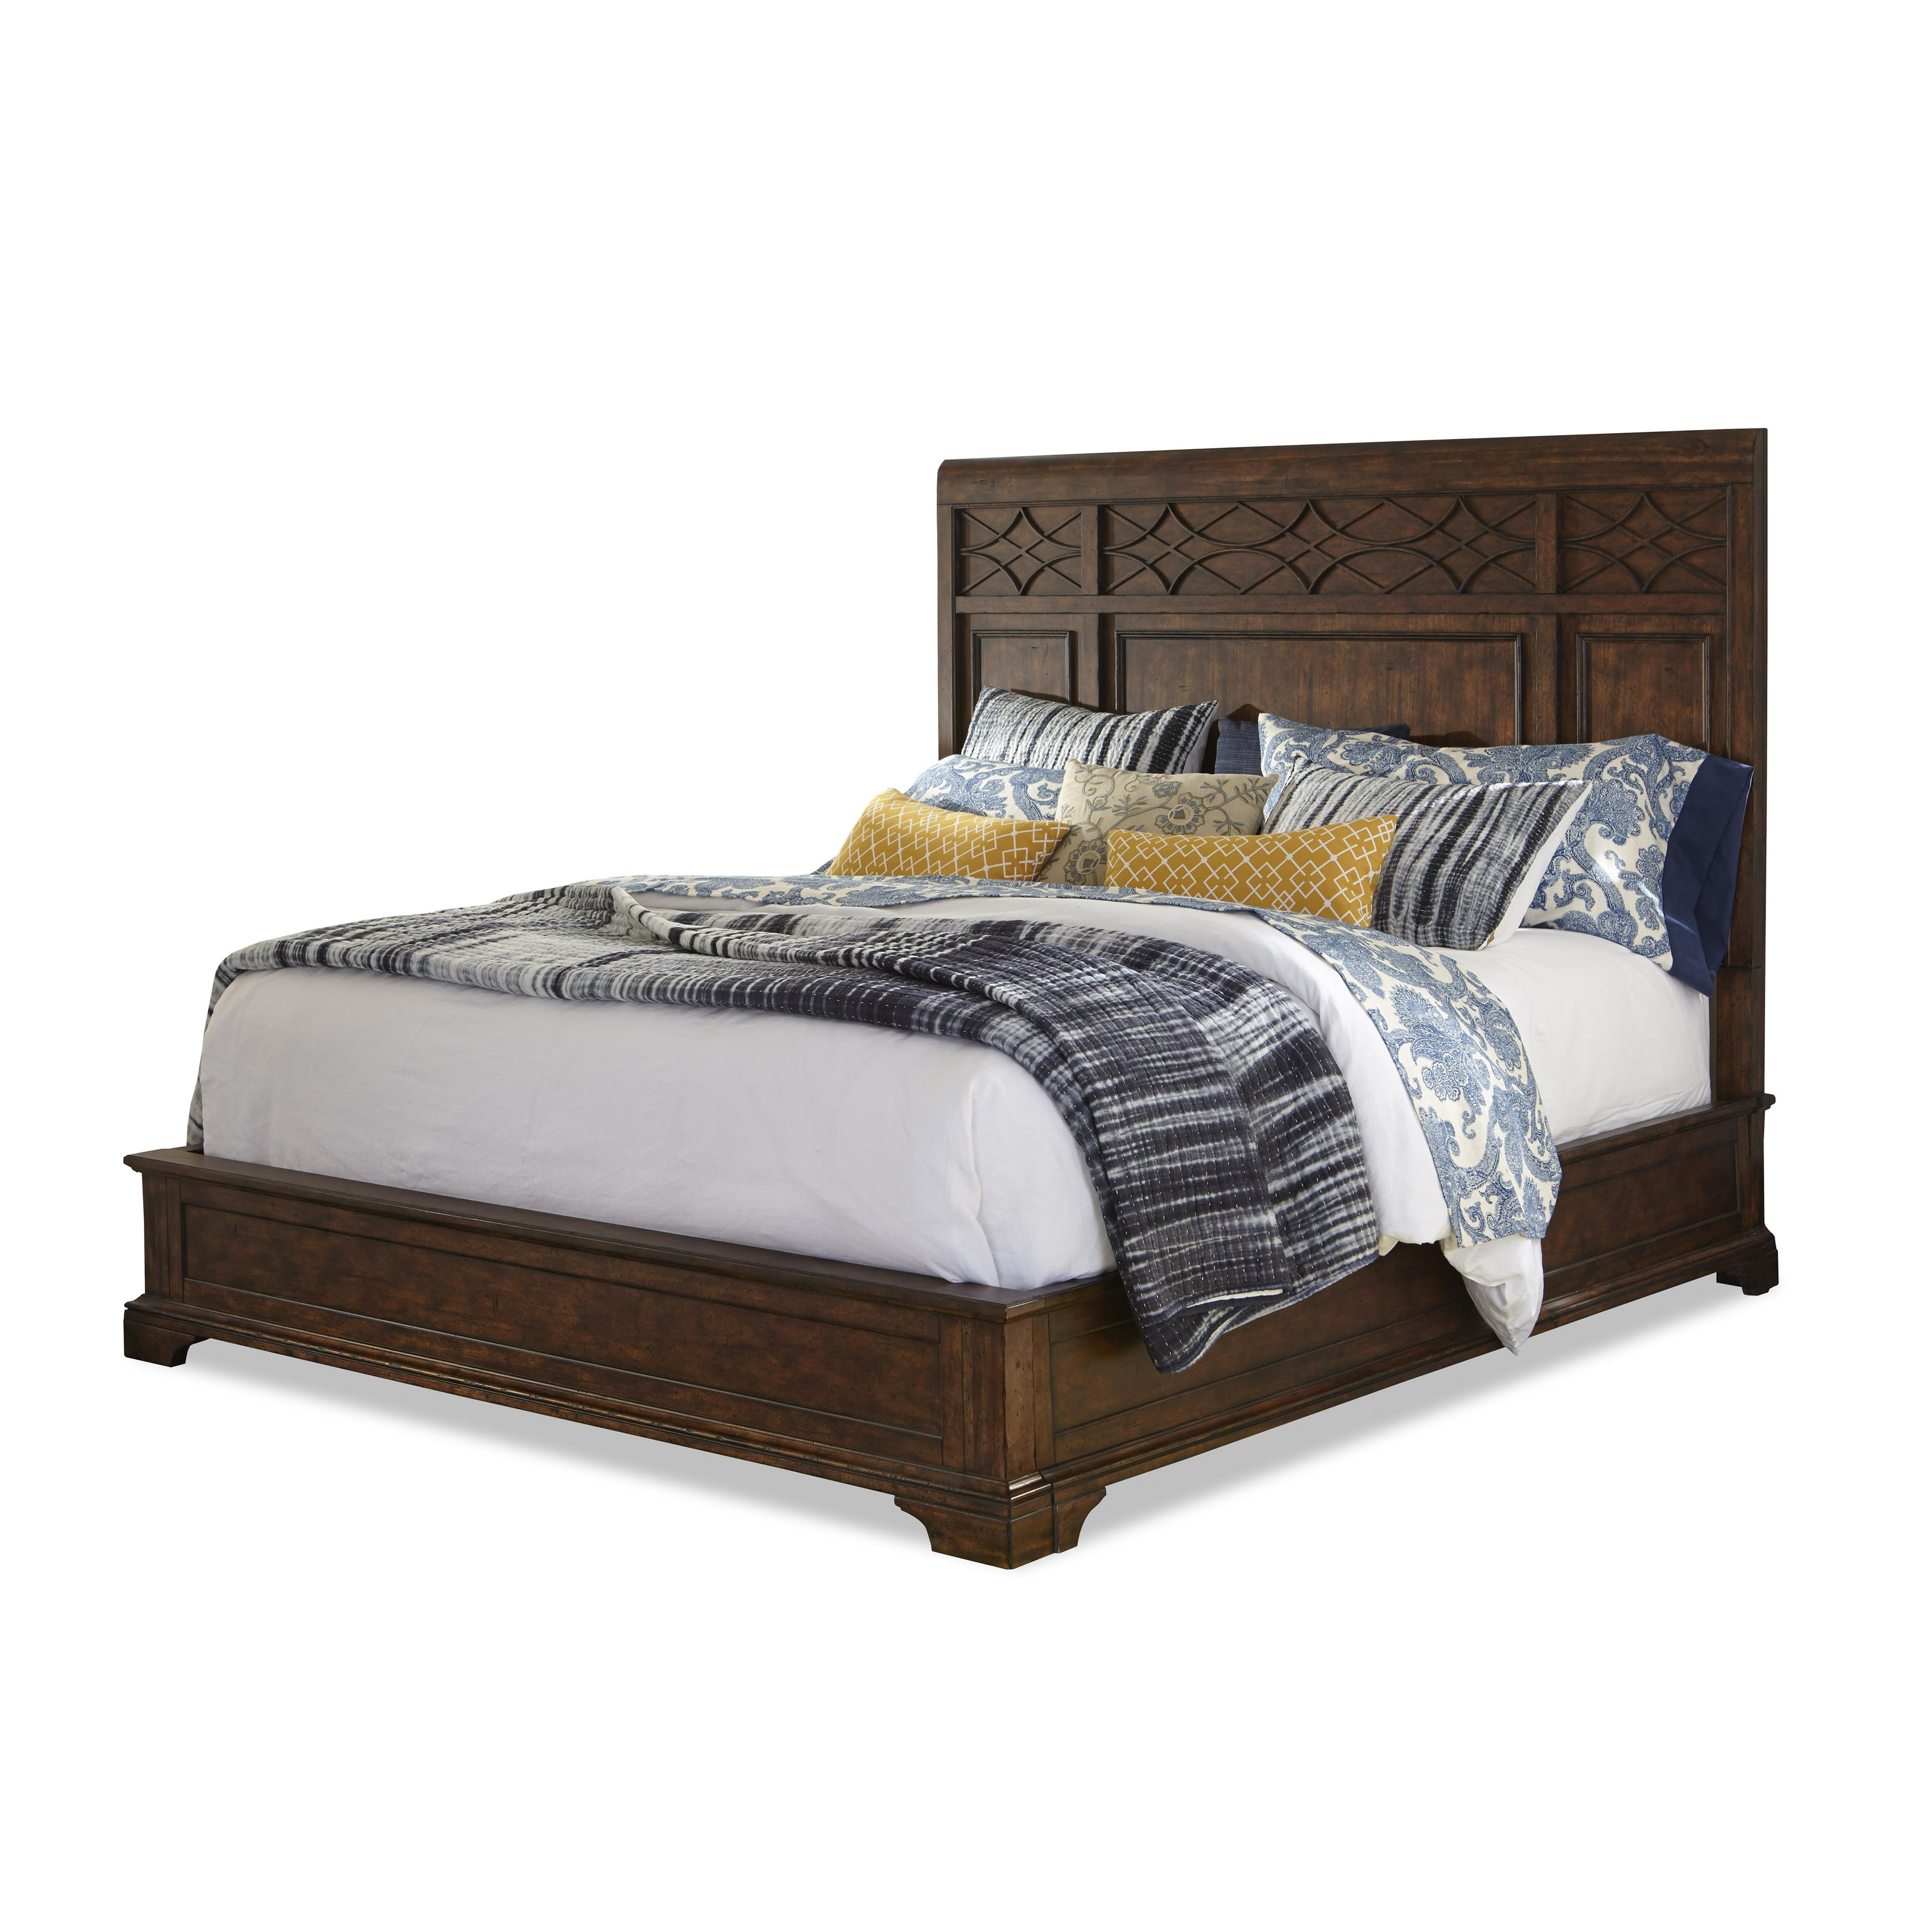 Trisha yearwood home collection by klaussner trisha yearwood home complete king panel bed with Home furniture and mattress